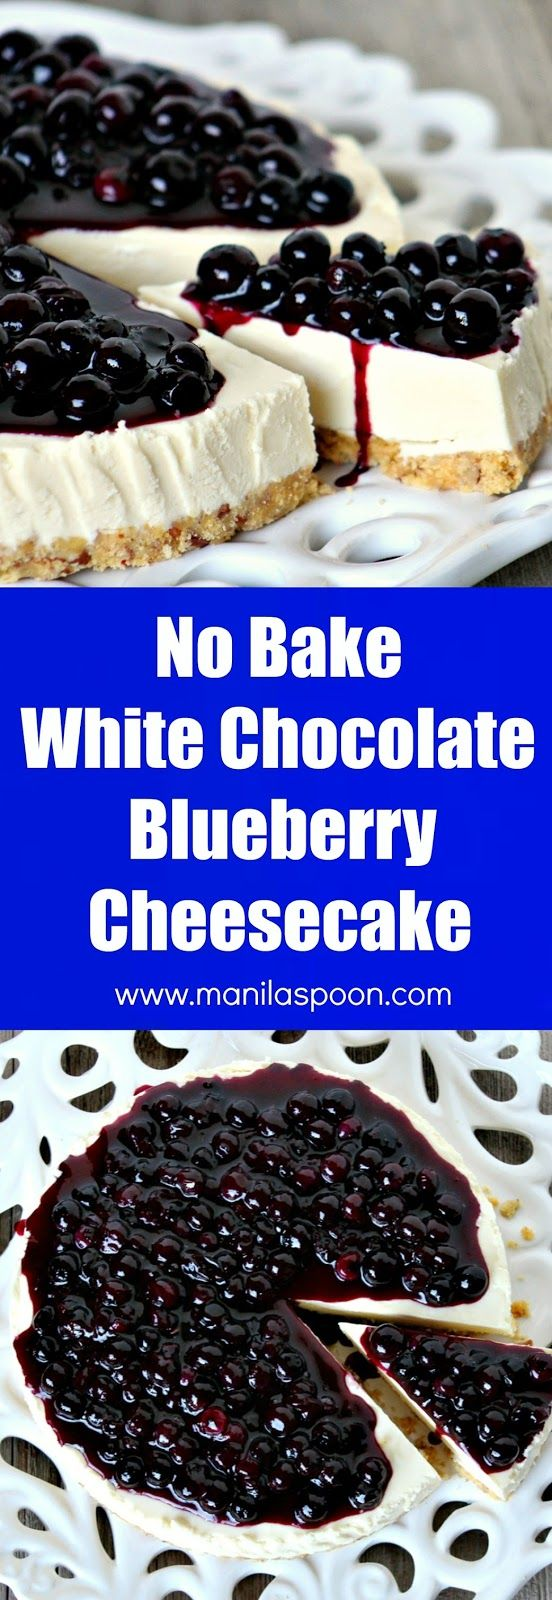 No Bake White Chocolate Blueberry Cheesecake